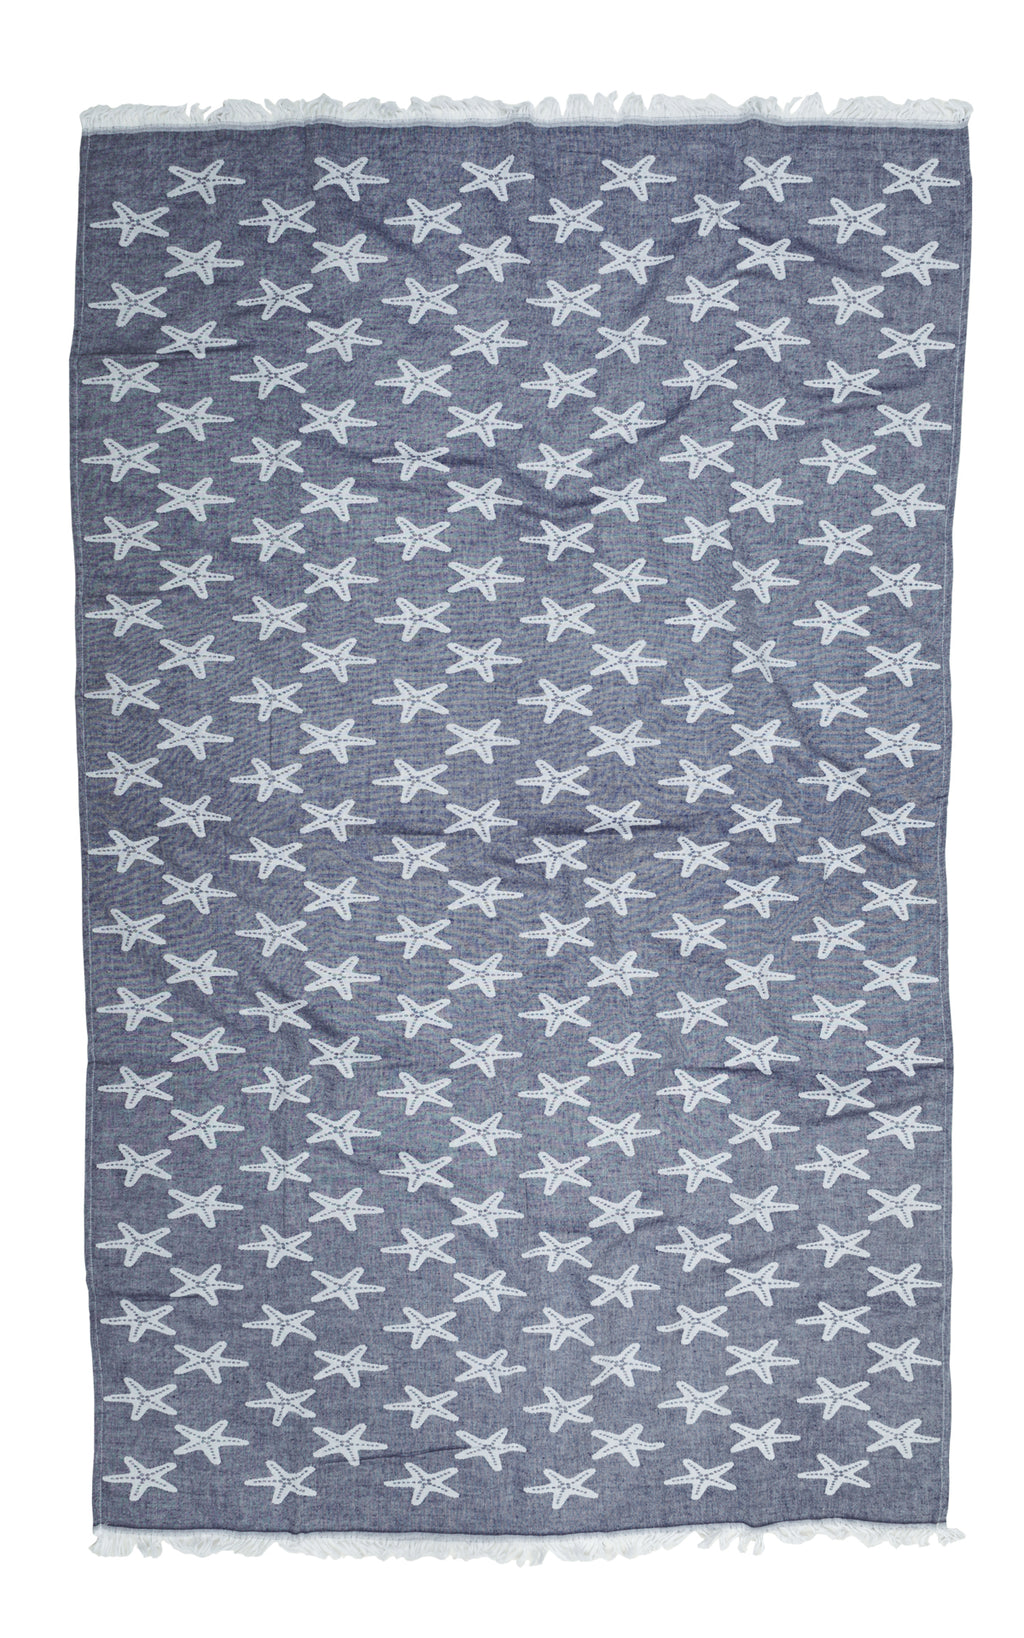 Starfish Under the Ocean Towel